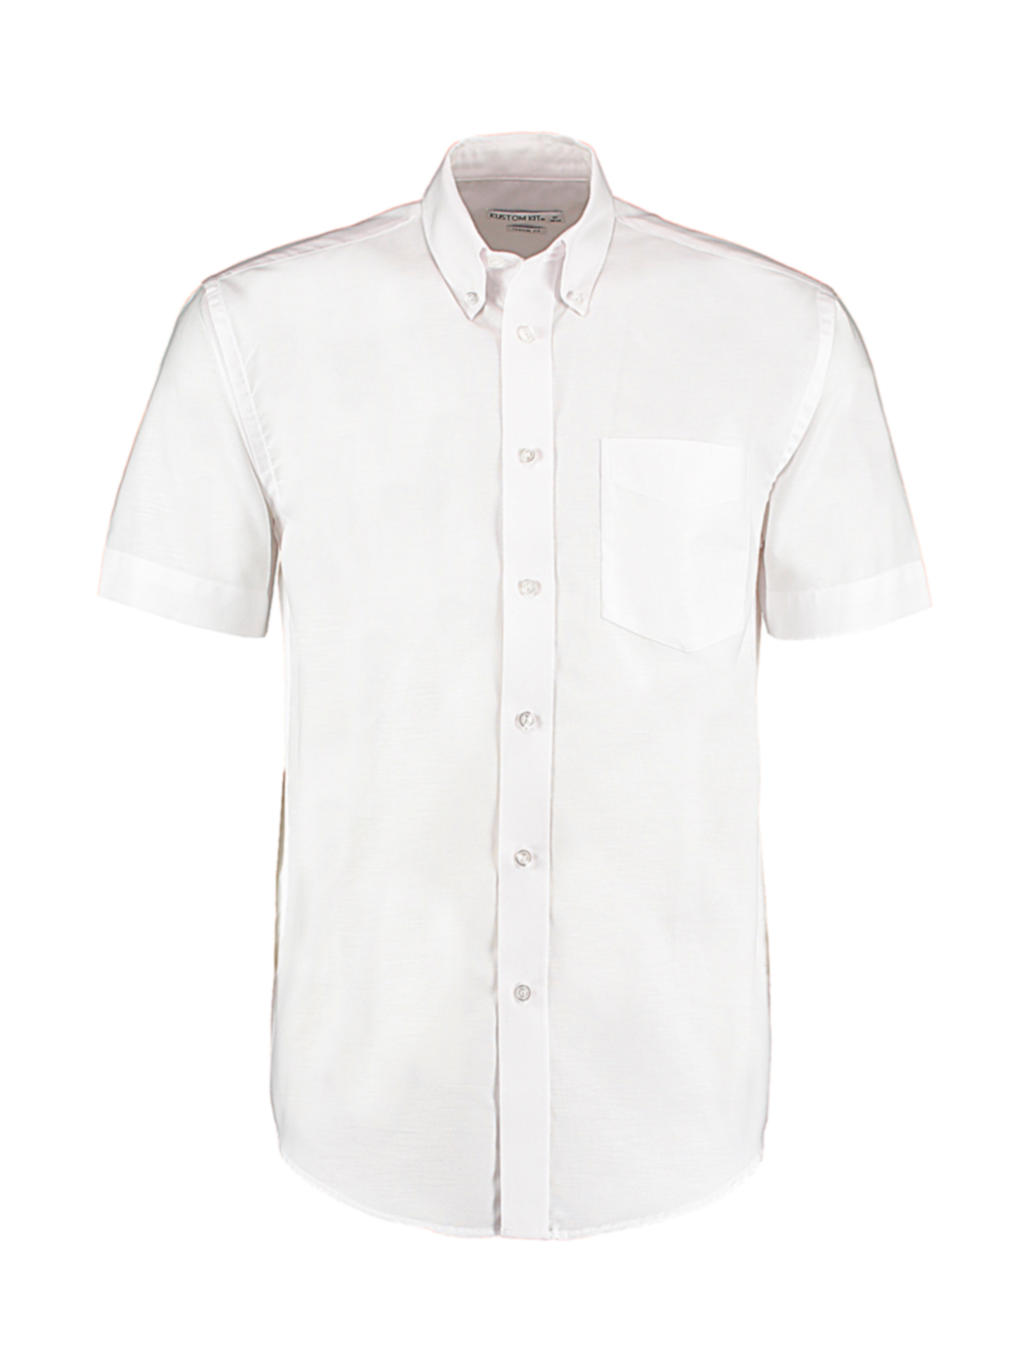 Promotional Oxford Shirt